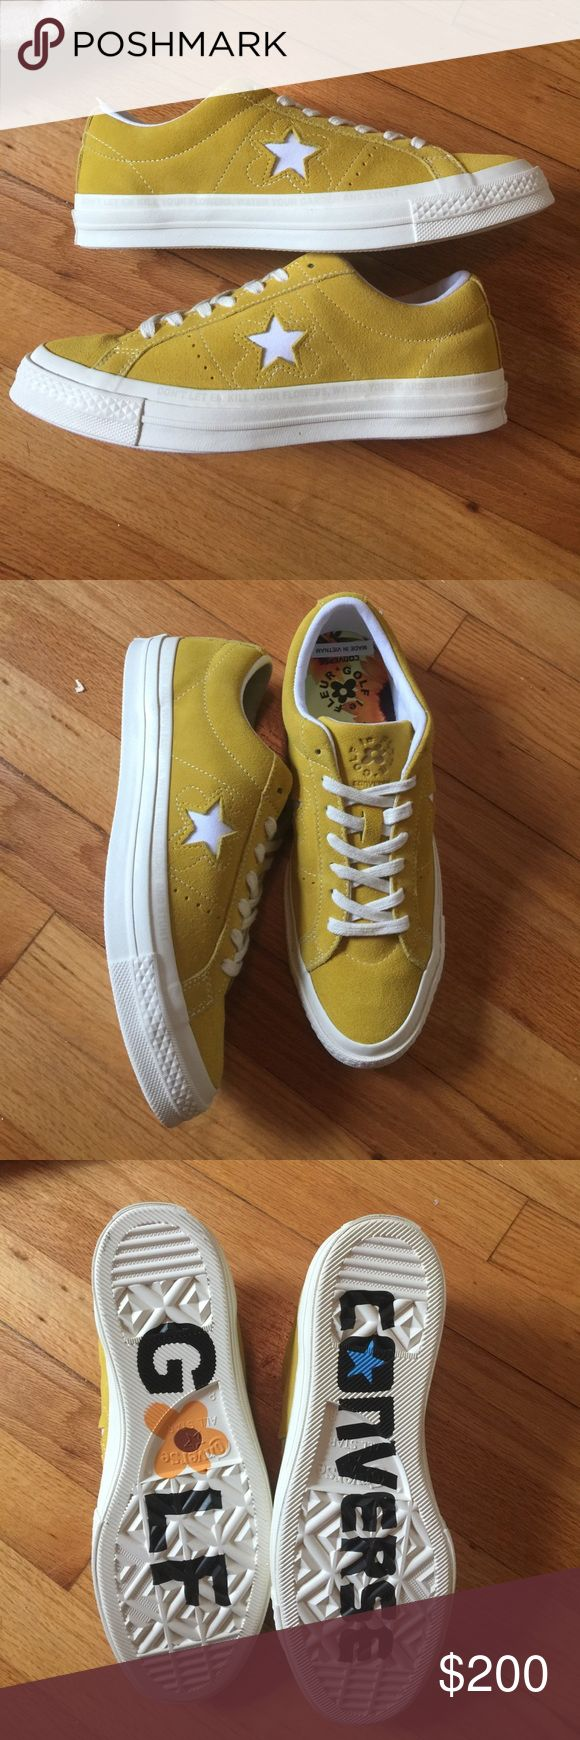 Converse- tyler the creator golf Le fleur 100% Deadstock in box. Some damage to box (pictured). Men's size 8 = women's size 10 Converse Shoes Sneakers